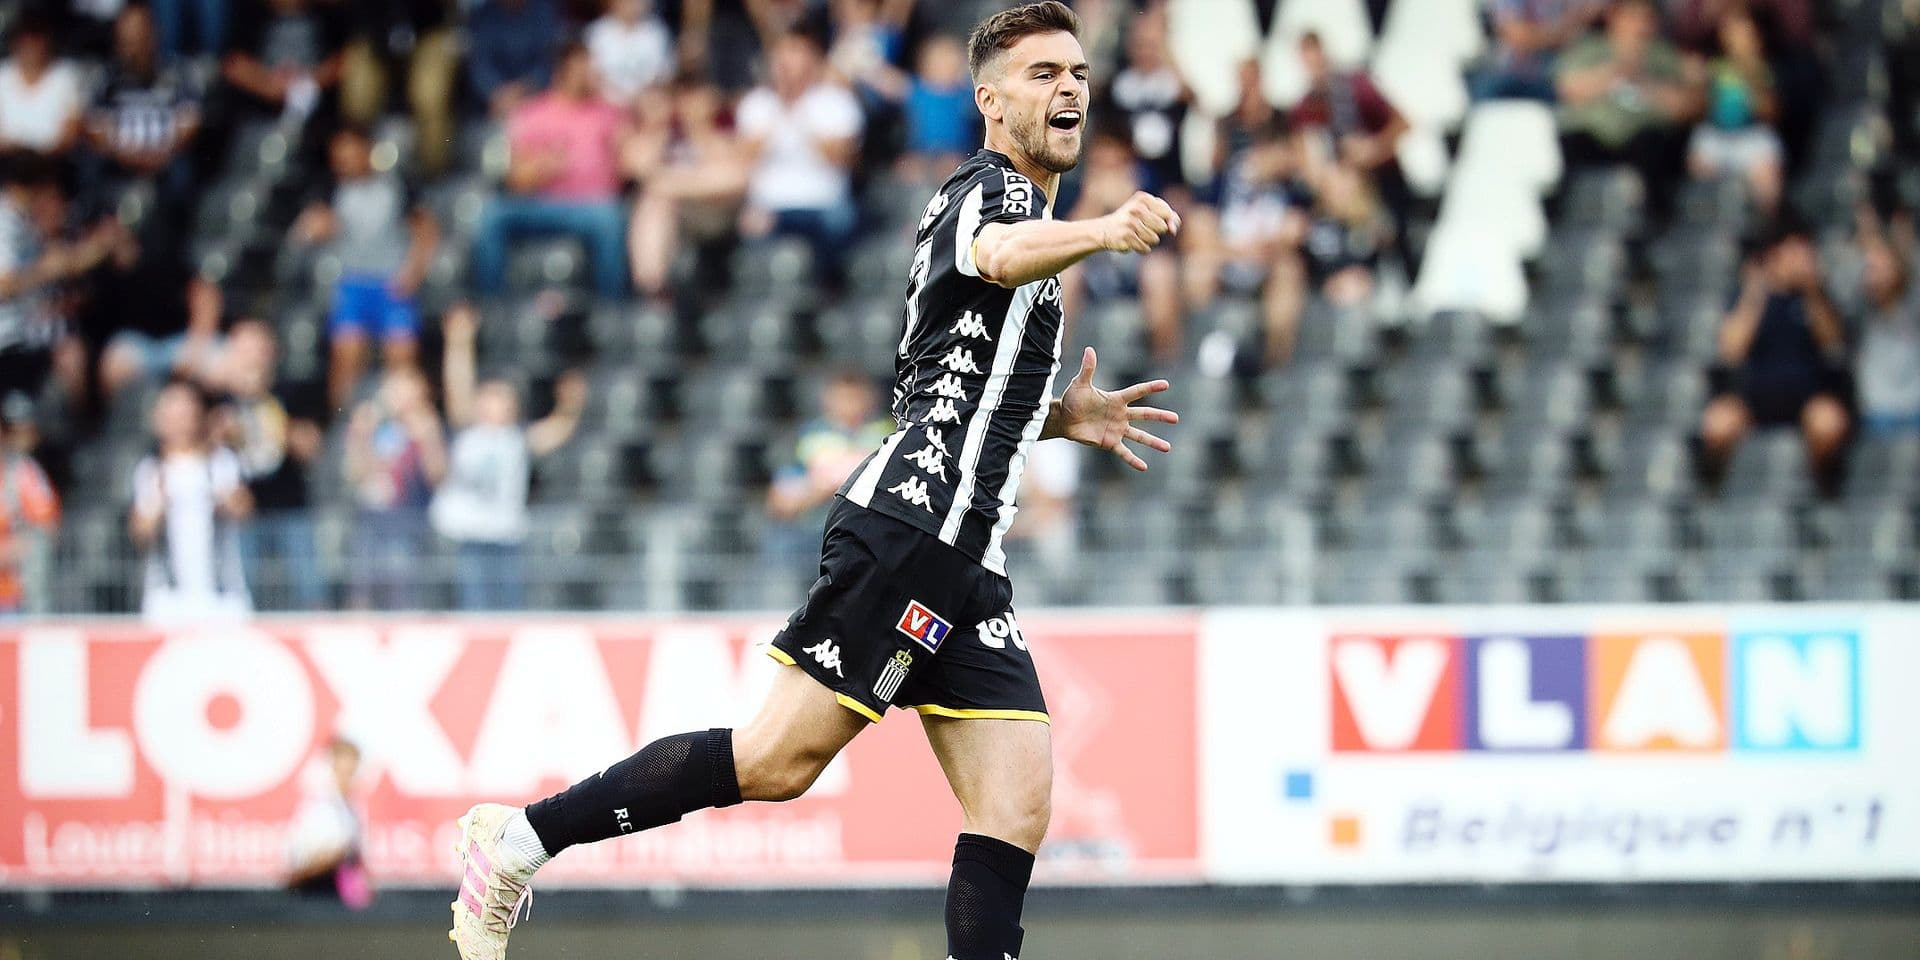 Charleroi's Massimo Bruno celebrates after scoring during a friendly soccer game between Belgian club Sporting Charleroi and French team Troyes AC, Friday 19 July 2019 in Charleroi, in preparation of the upcoming 2019-2020 Jupiler Pro League season. BELGA PHOTO VIRGINIE LEFOUR